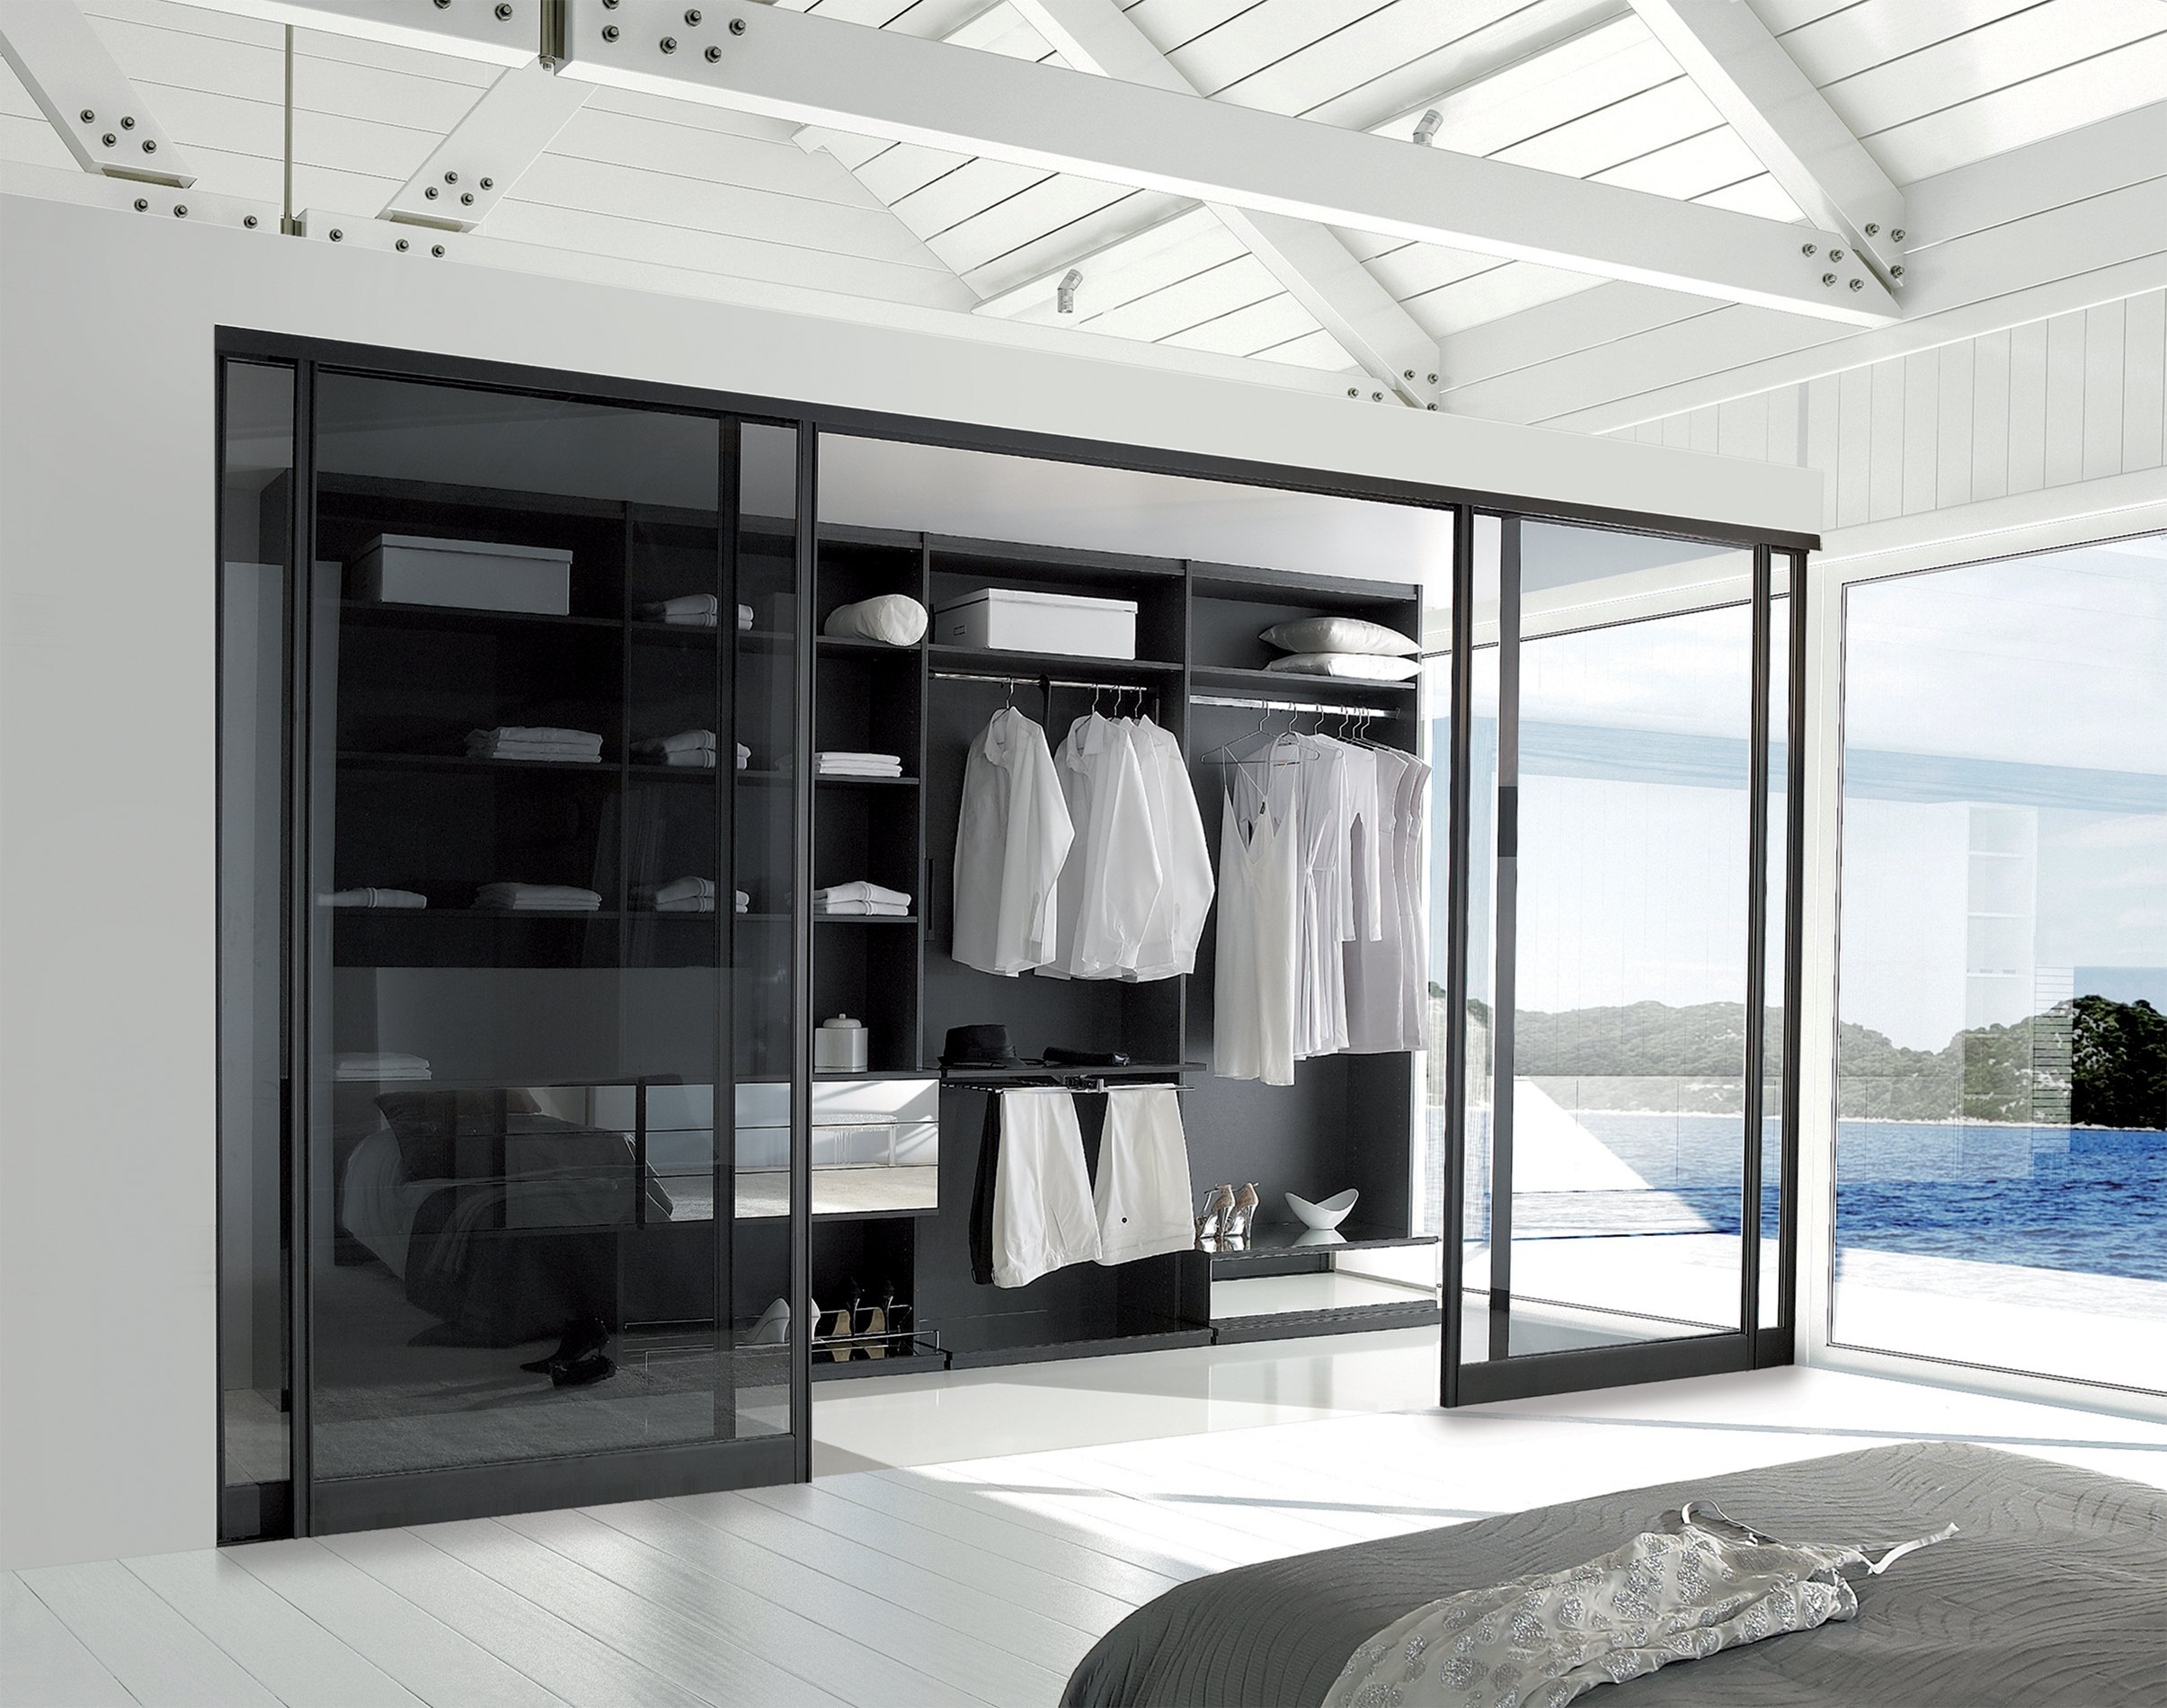 empty white room with large windows and scenic view.